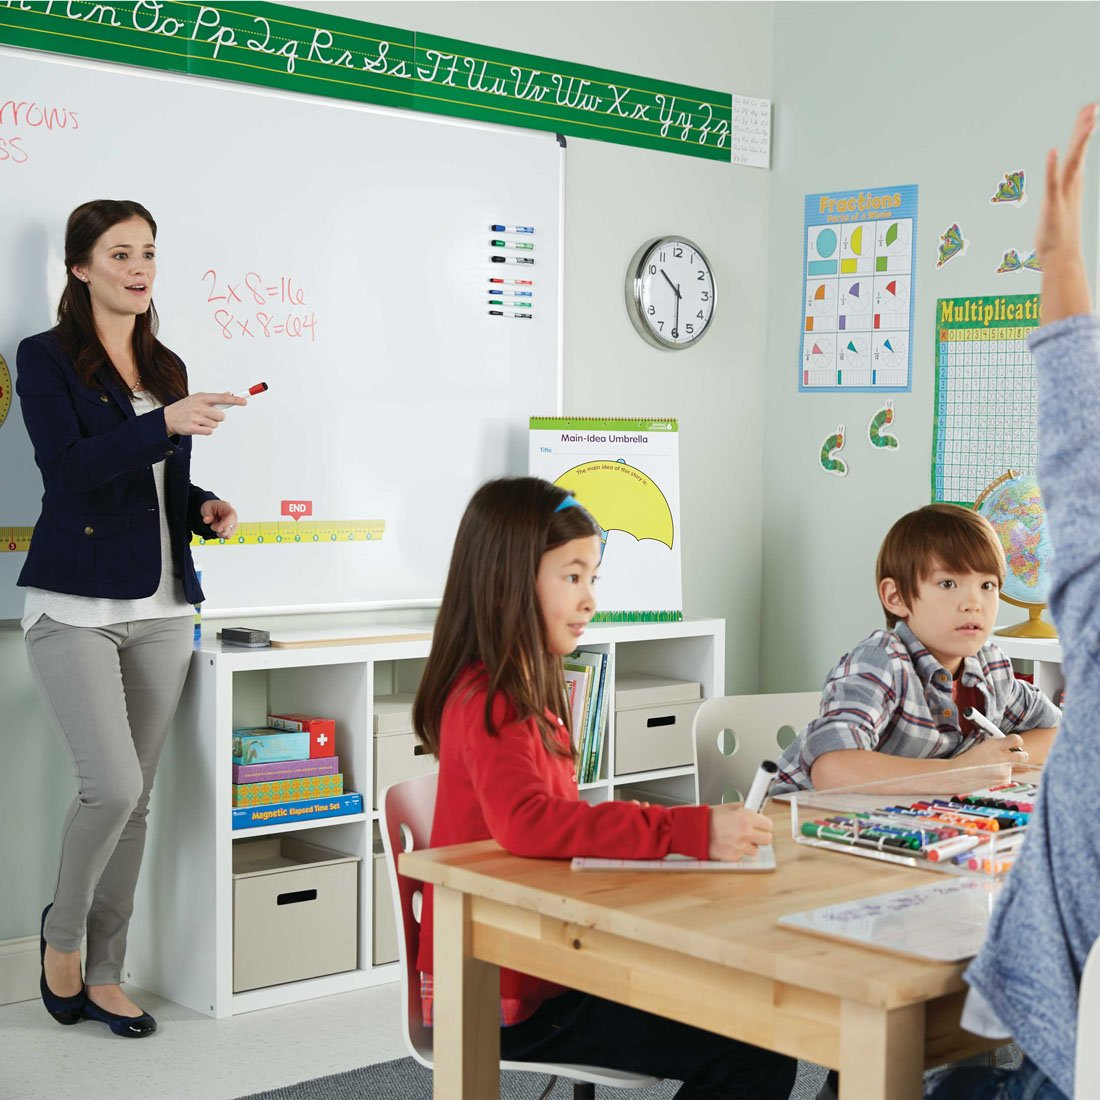 teacher-in-front-of-class-at-board-with-expo-marker